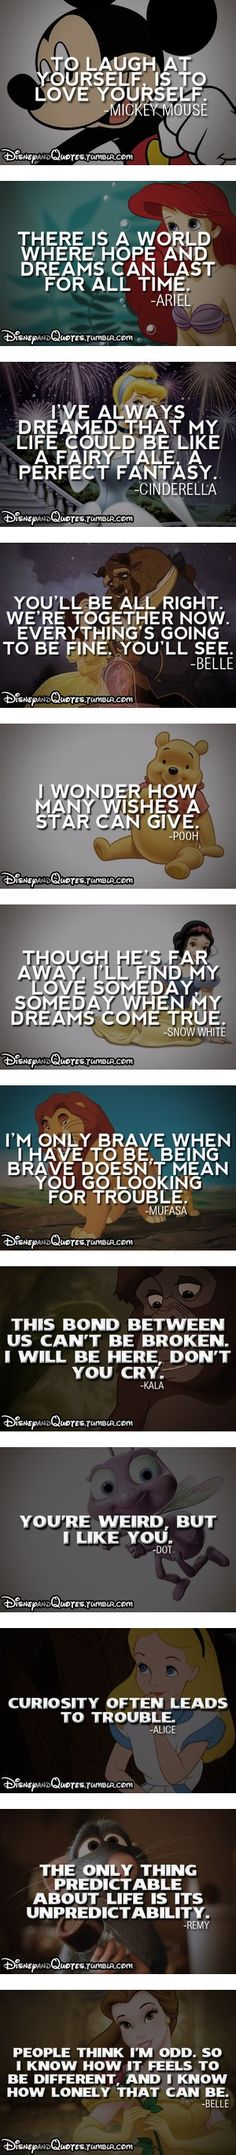 And this is why I love Disney....especially Beauty and the Beast